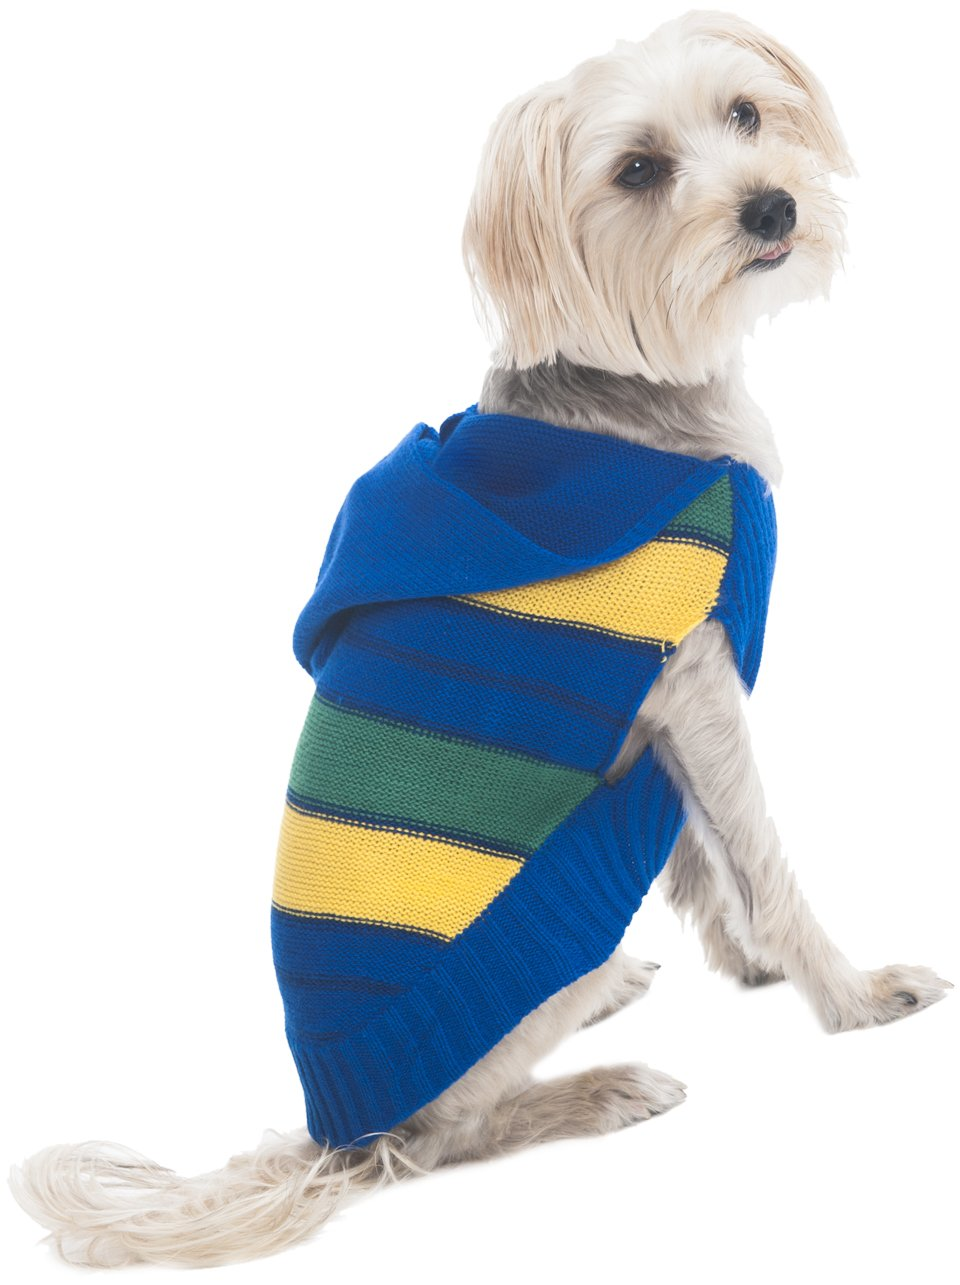 Fashion Pet Hooded Striped Sweater for Pets, X-Small, bluee